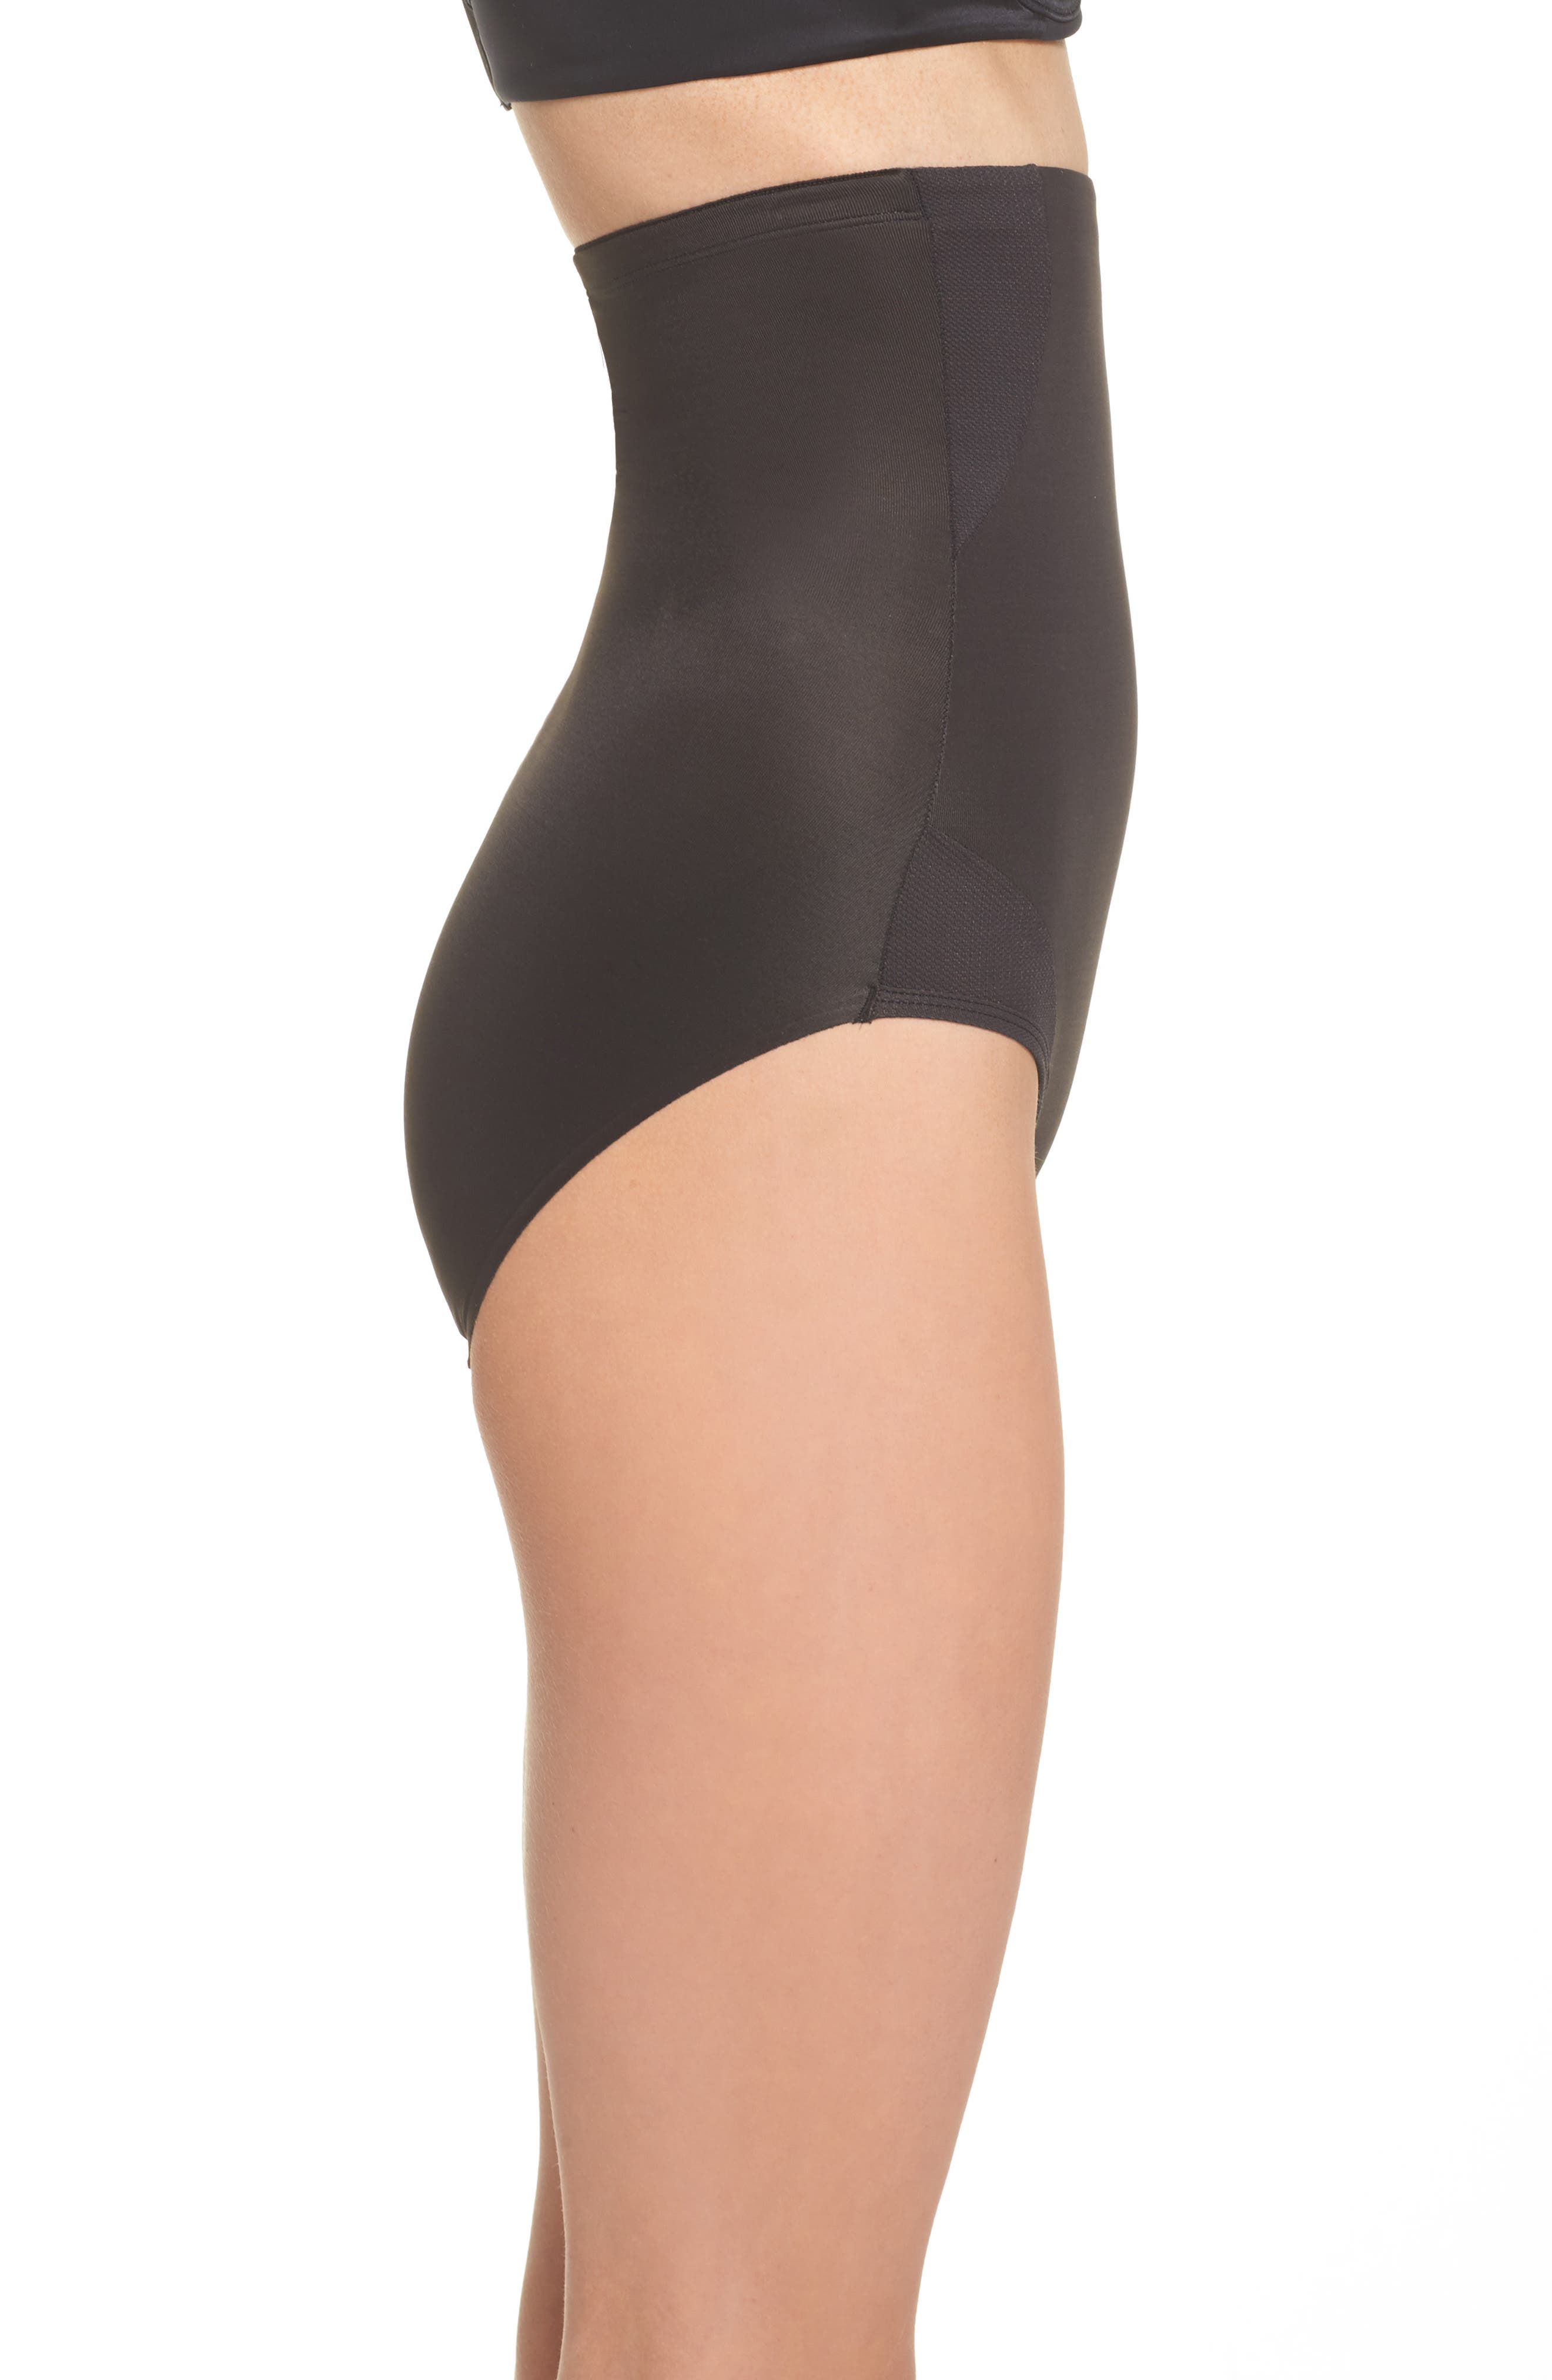 Cooling High Waist Shaping Briefs,                             Alternate thumbnail 3, color,                             Black